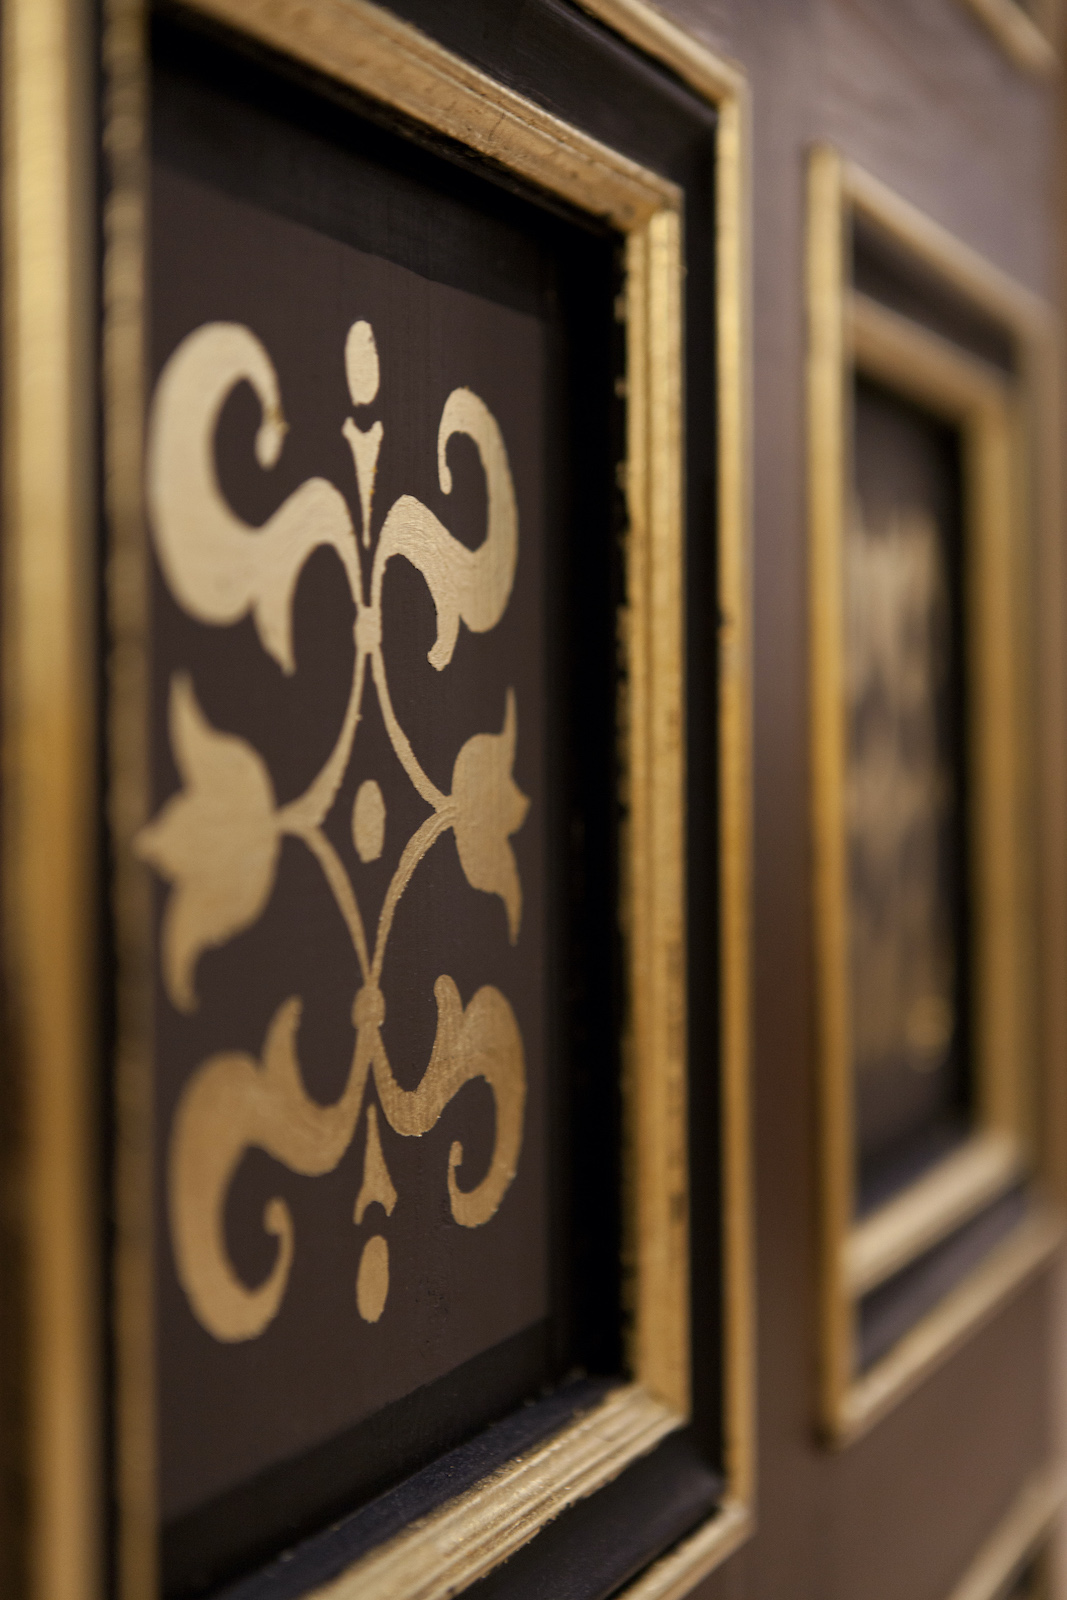 Detail on a black wall shows gold patterns